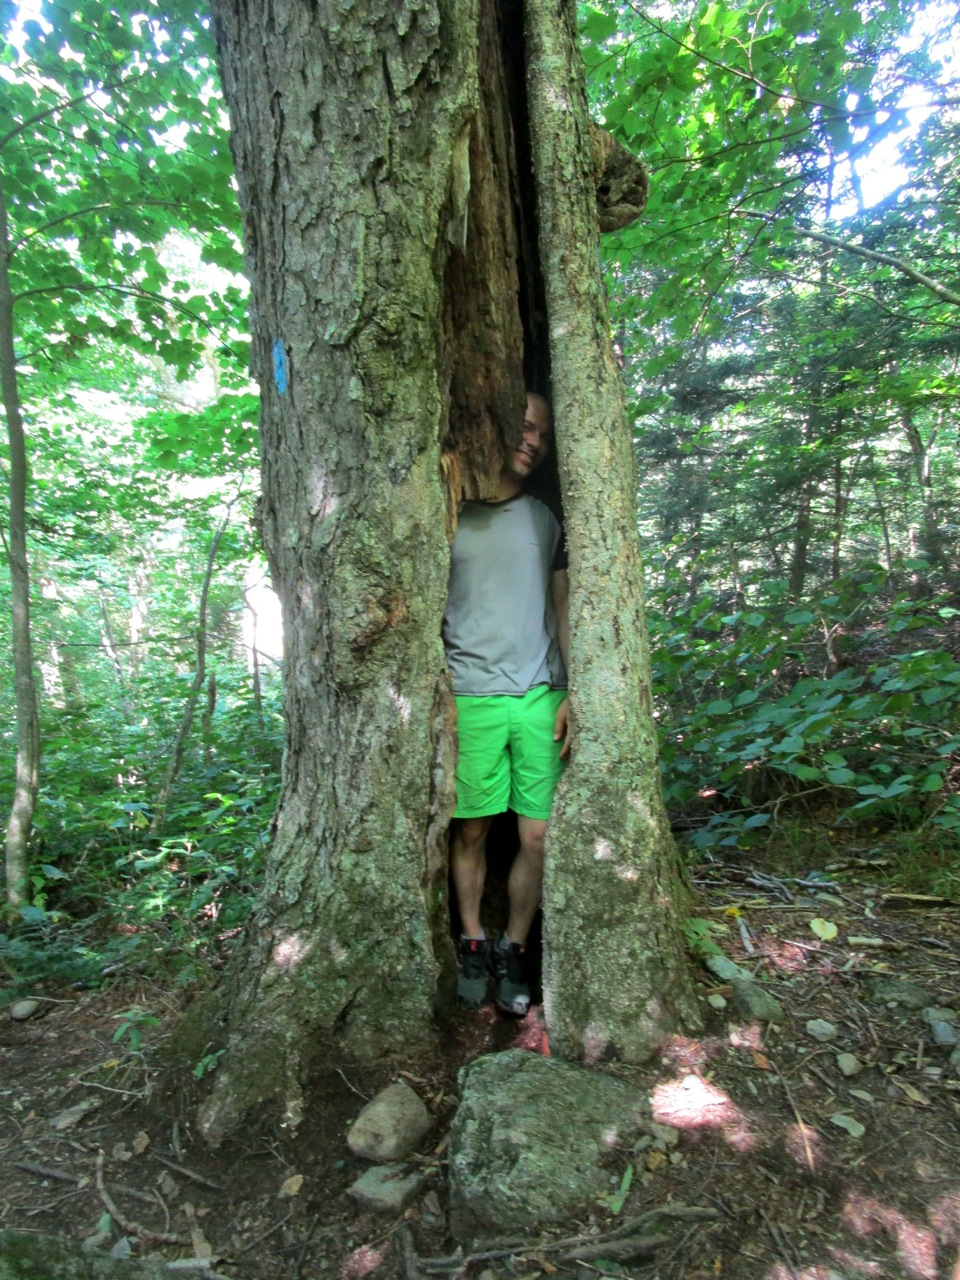 Photo i_nathan_in_the_tree.jpg